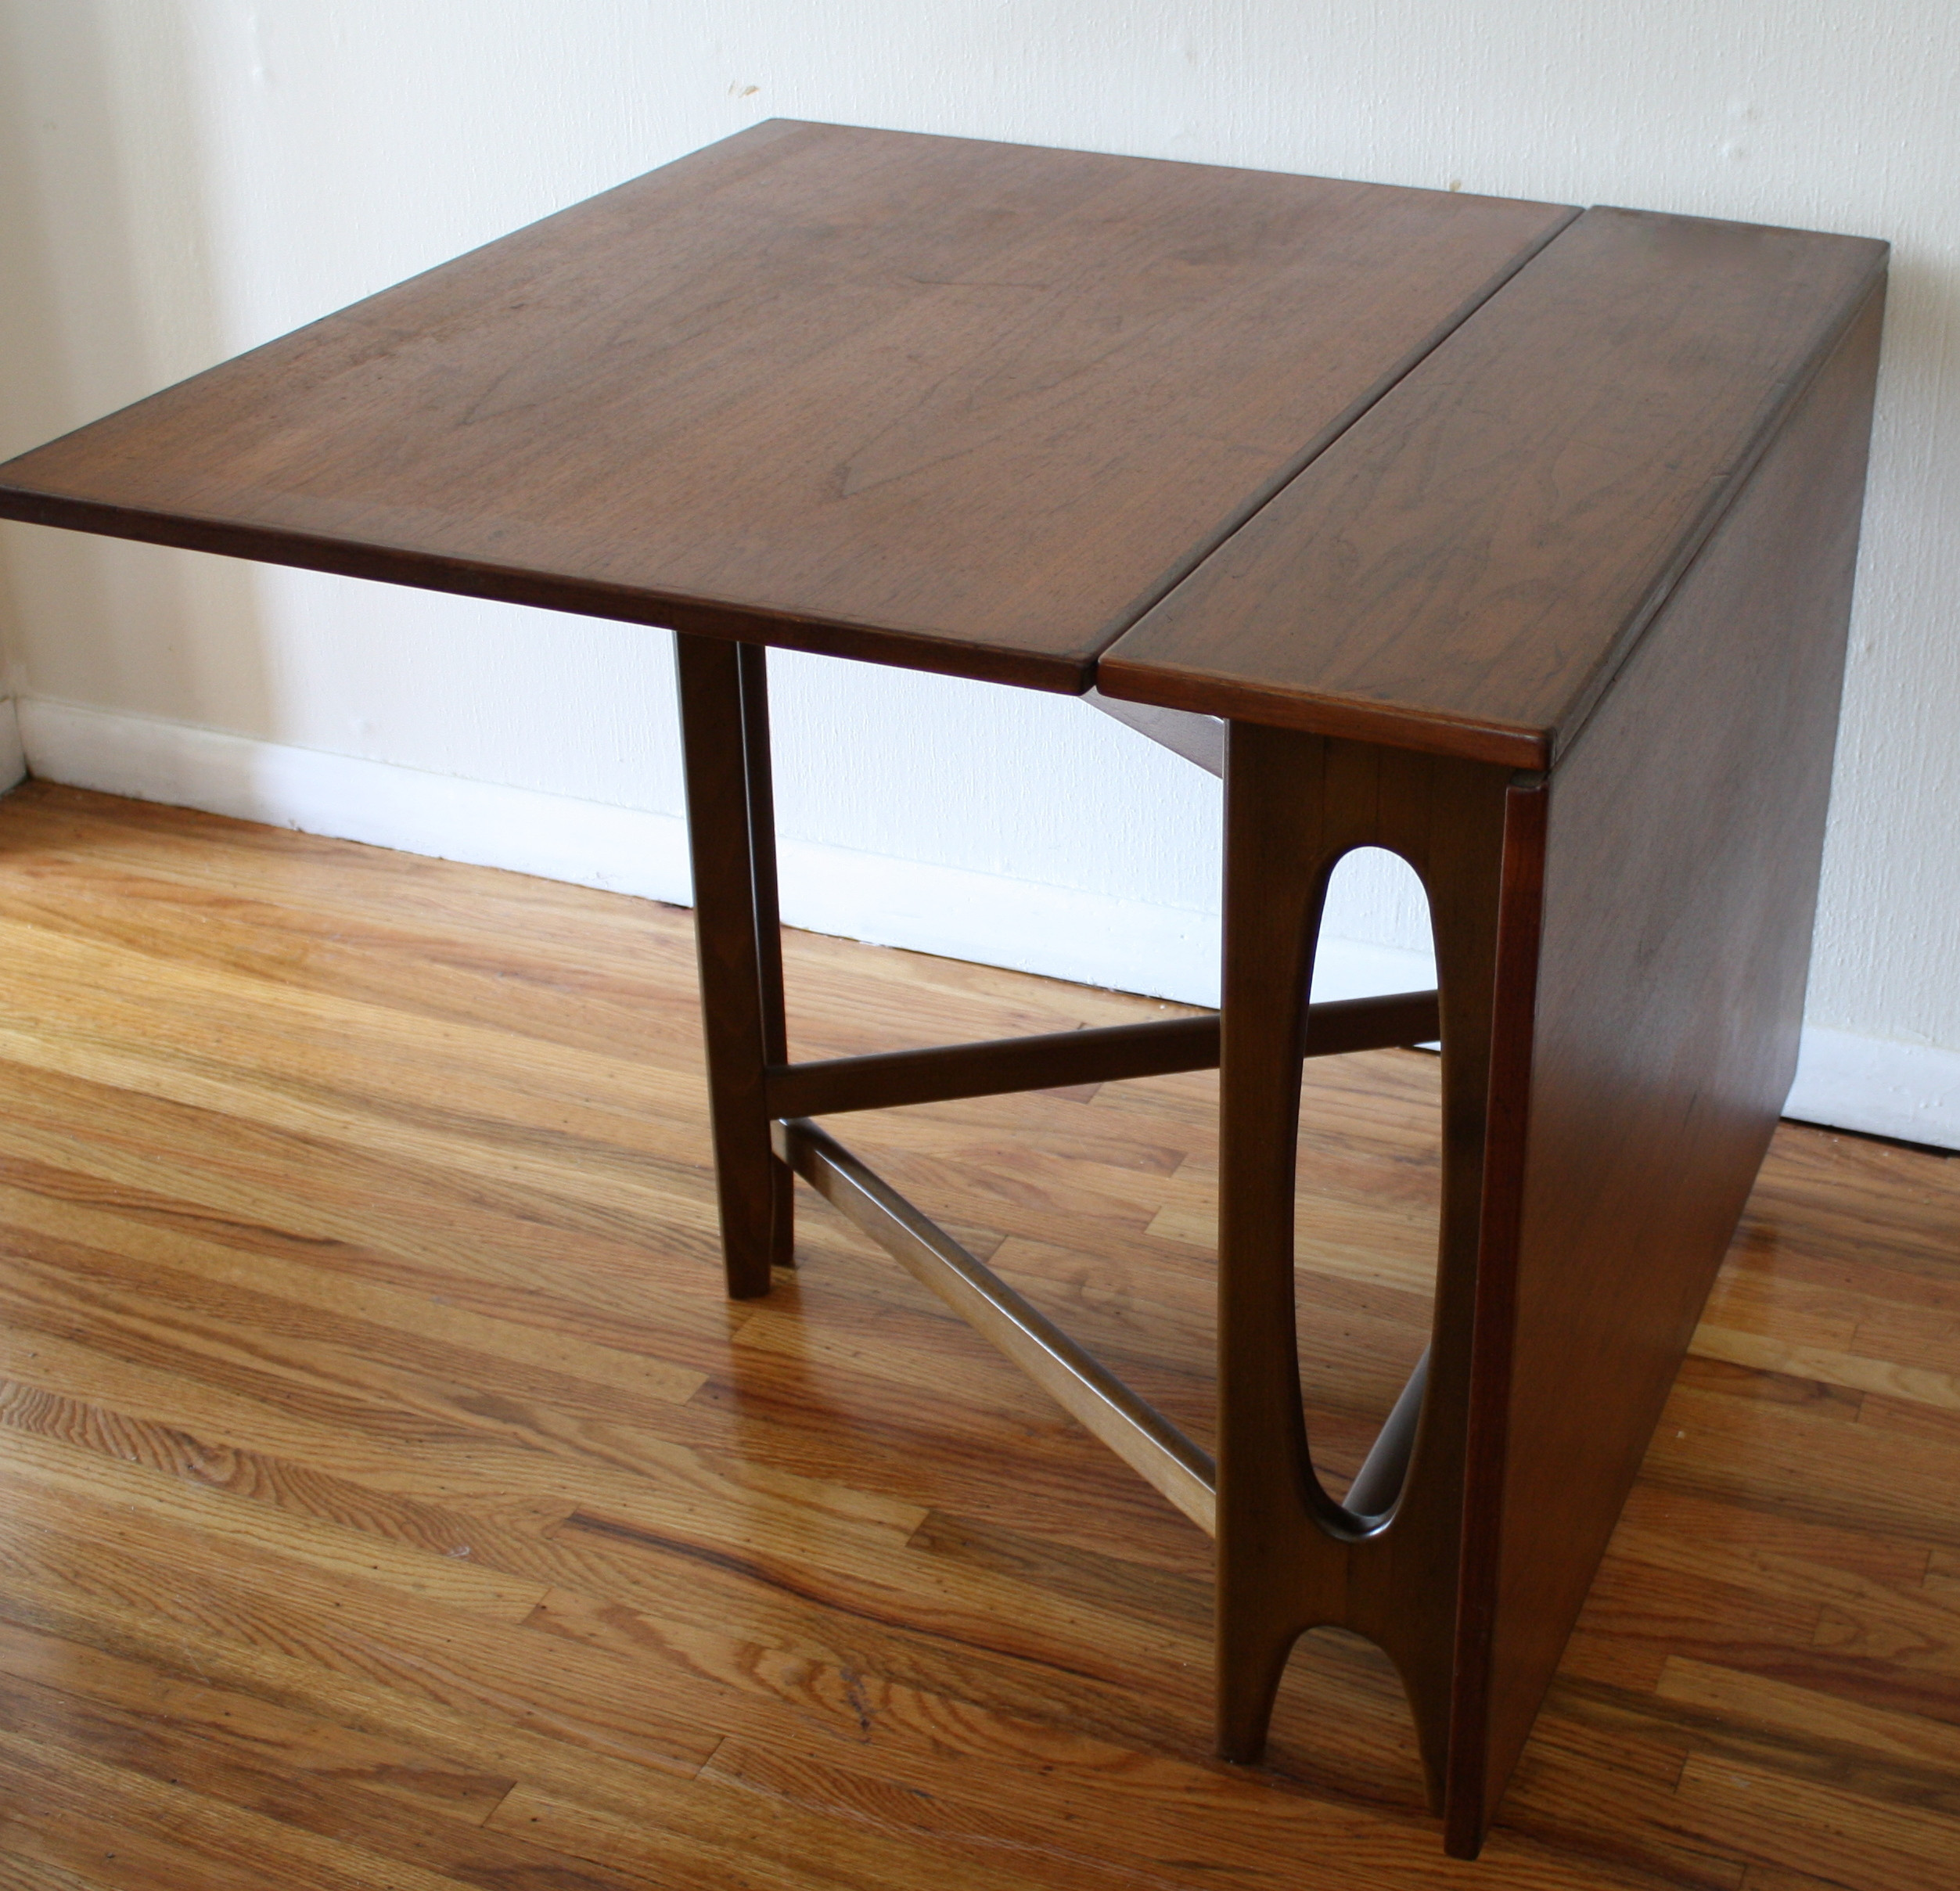 Best ideas about Folding Dining Table . Save or Pin Dining Table Folding Dining Table Videos Now.